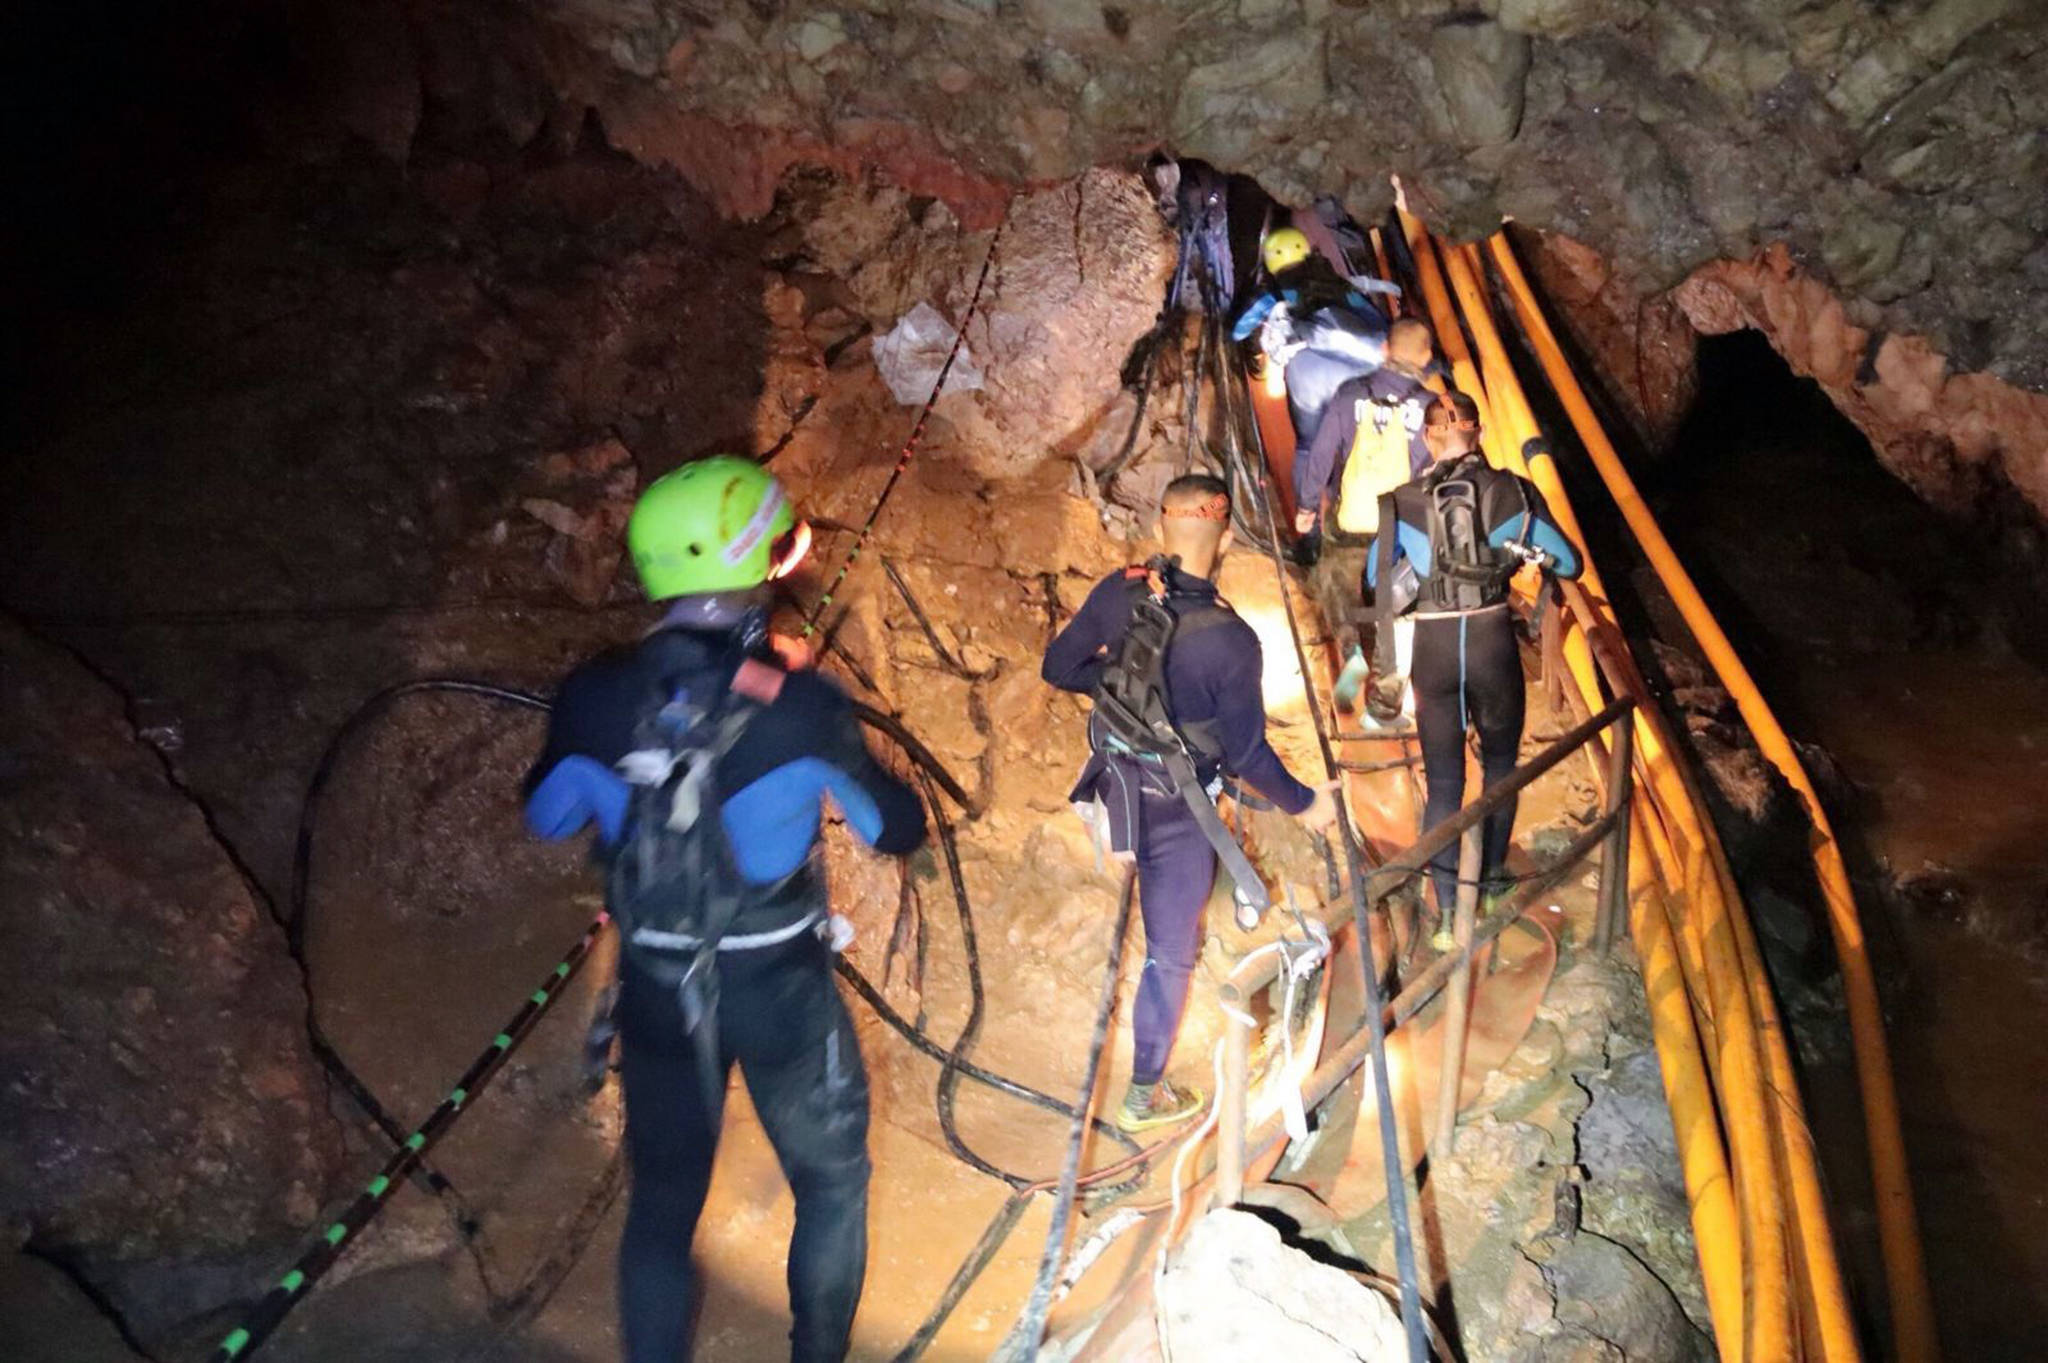 In this undated photo released by Royal Thai Navy on Saturday, July 7, 2018, Thai rescue team members walk inside a cave where 12 boys and their soccer coach were trapped since June 23, in Mae Sai, Chiang Rai province, northern Thailand. (Royal Thai Navy via AP)